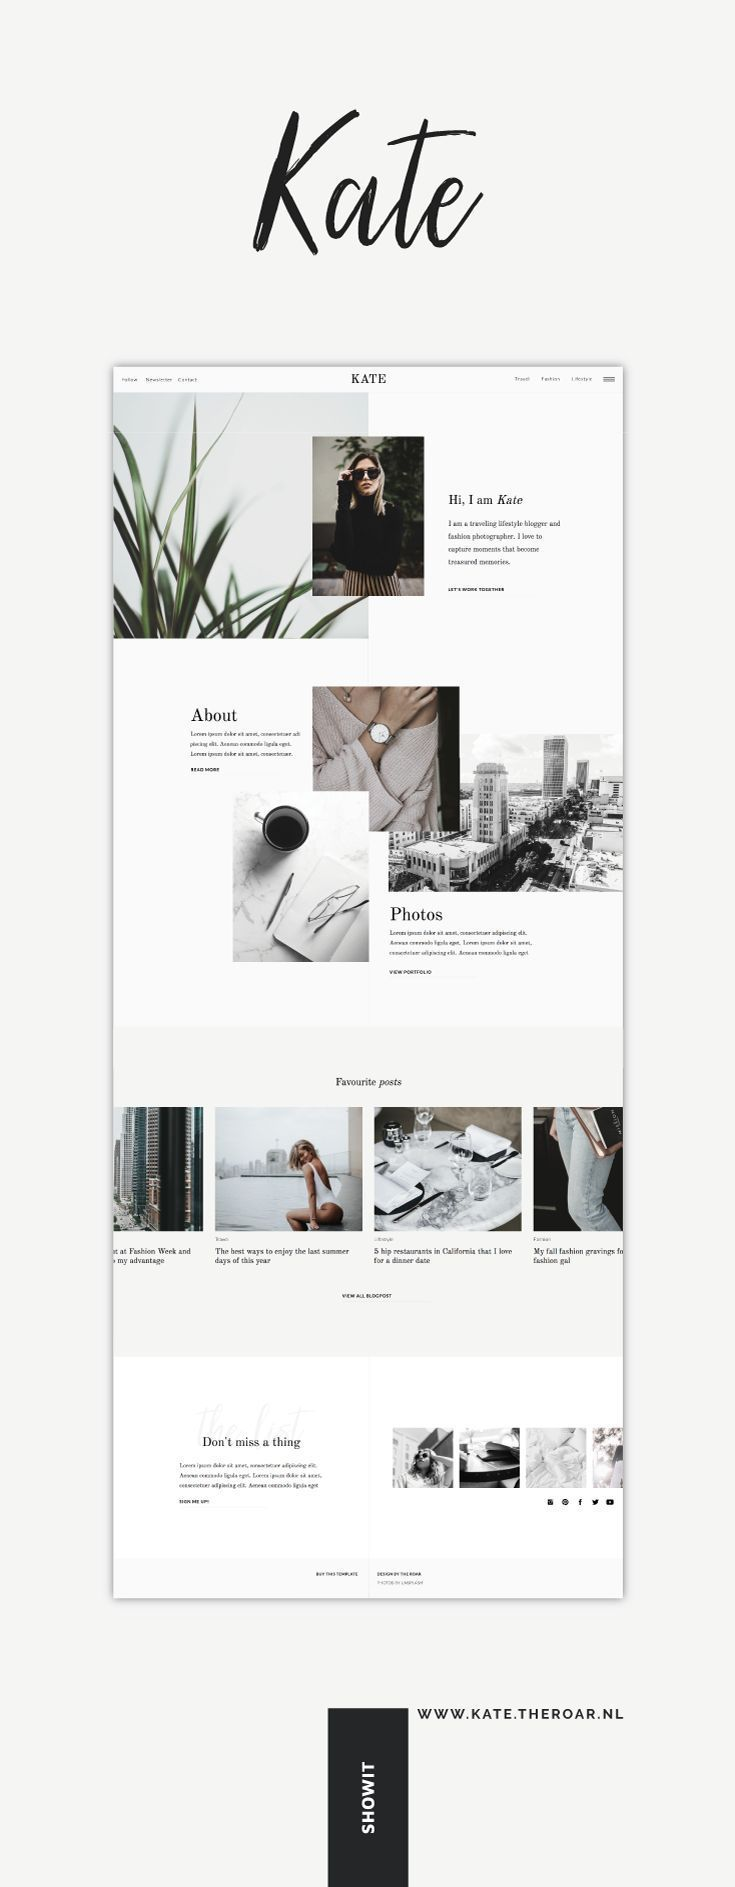 One-of-a-kind Showit template Kate voor een assertion web site met 100% creatieve…